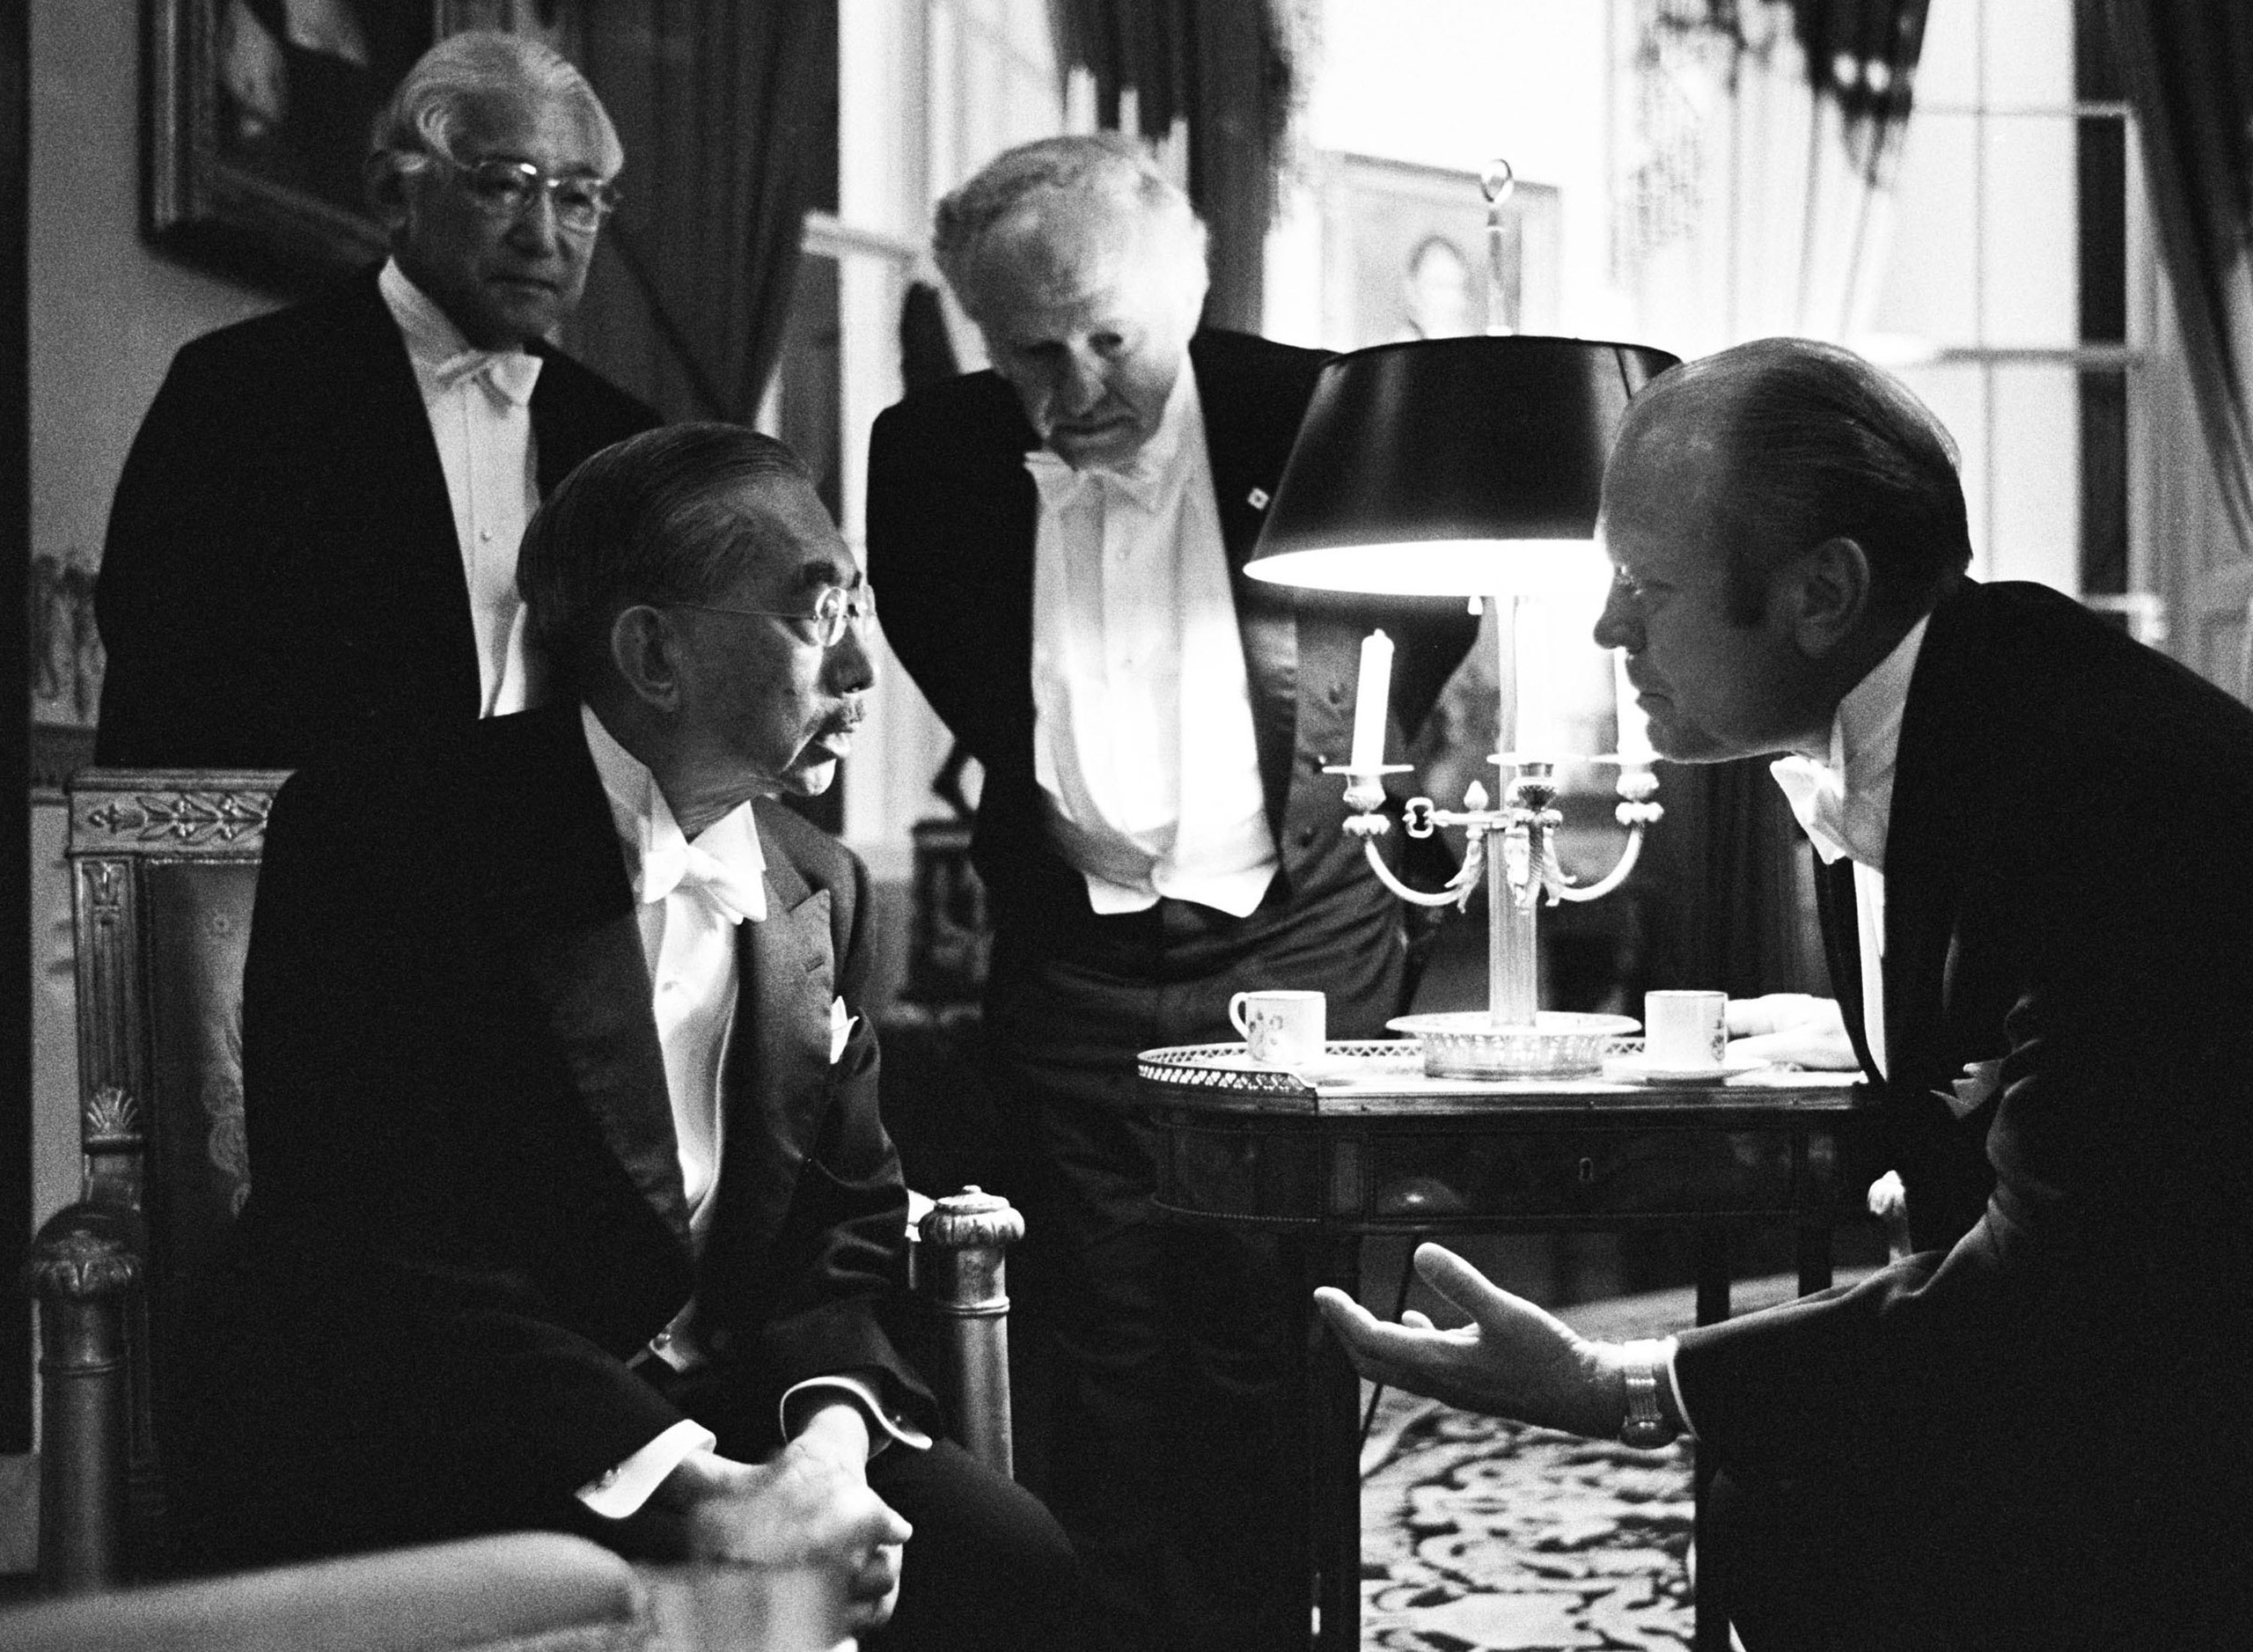 With their interpreters to aid them, Emperor Hirohito of Japan and President Gerald R. Ford chat in the Blue Room on the occasion of the state dinner in honor of the Emperor and Empress Nagako on Oct. 2, 1975, at the White House in Washington, D.C.